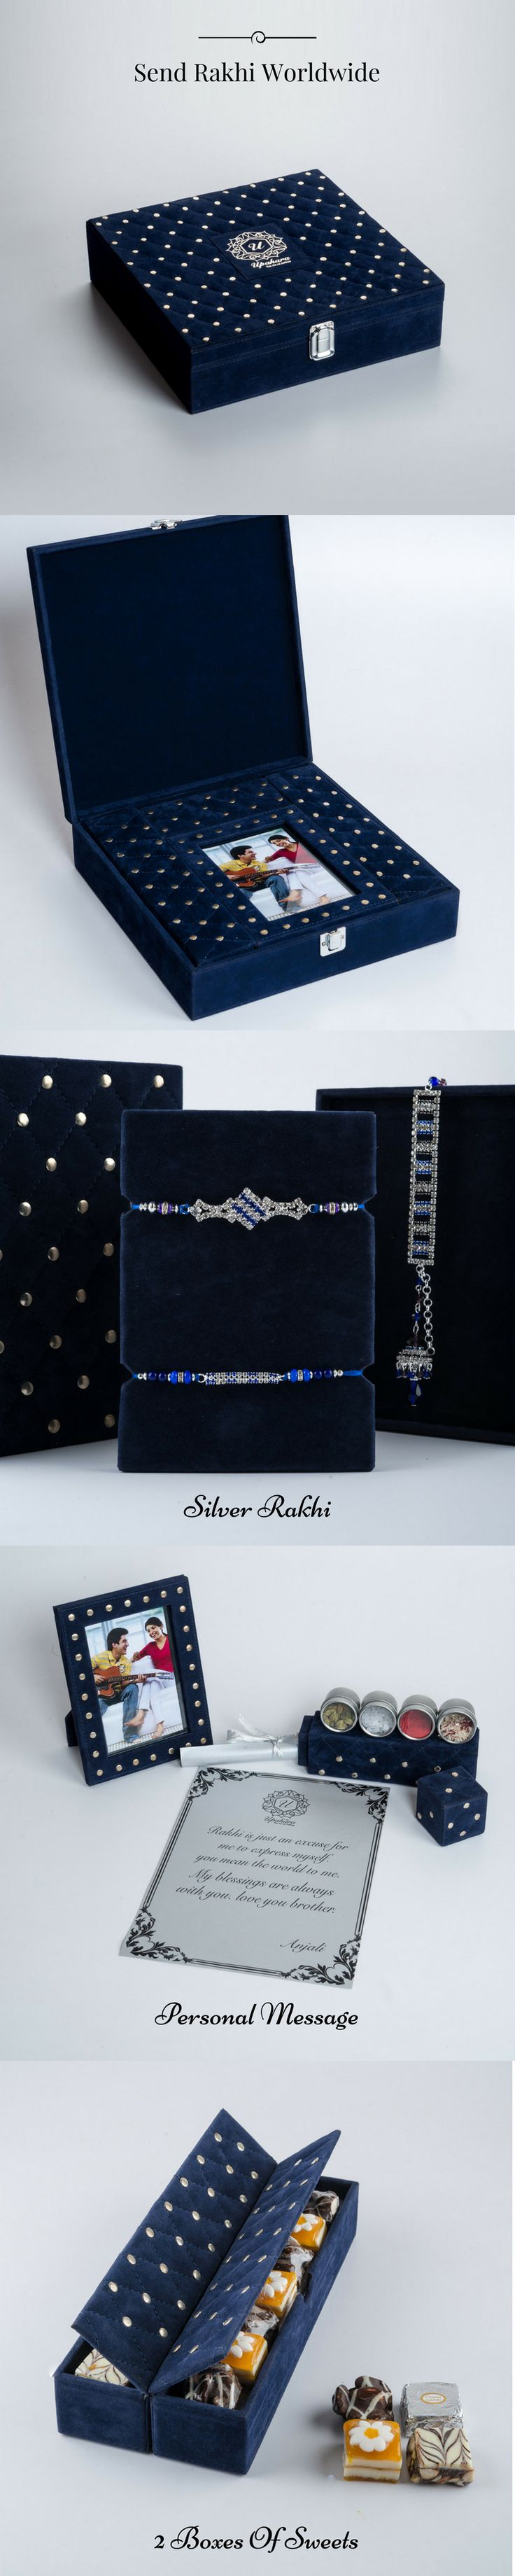 Silver Rakhi Collection #sendrakhitousa Send Rakhi Online to Australia New Zealand #sendrakhitoUK #PremiumRakhi #StoneRakhi #OnlineRakhi #upahararakhi #sendrakhiindia #sendrakhiAustralia #BhabhiRakhi #goldrakhiusa #pearlrakhi #sendrakhitodubai #sendrakhitokuwait #rakhi2017 #sandalwood #sandalwoodrakhi #sendrakhi #silverrakhi #gold #rakhi #rakhishopping #rakhionline  #rakshabandhan #sendrakhitoIndia #Australia #newzealand #gurgaon #bengaluru #chicago #california #chandanrakhi #expensiverakhi